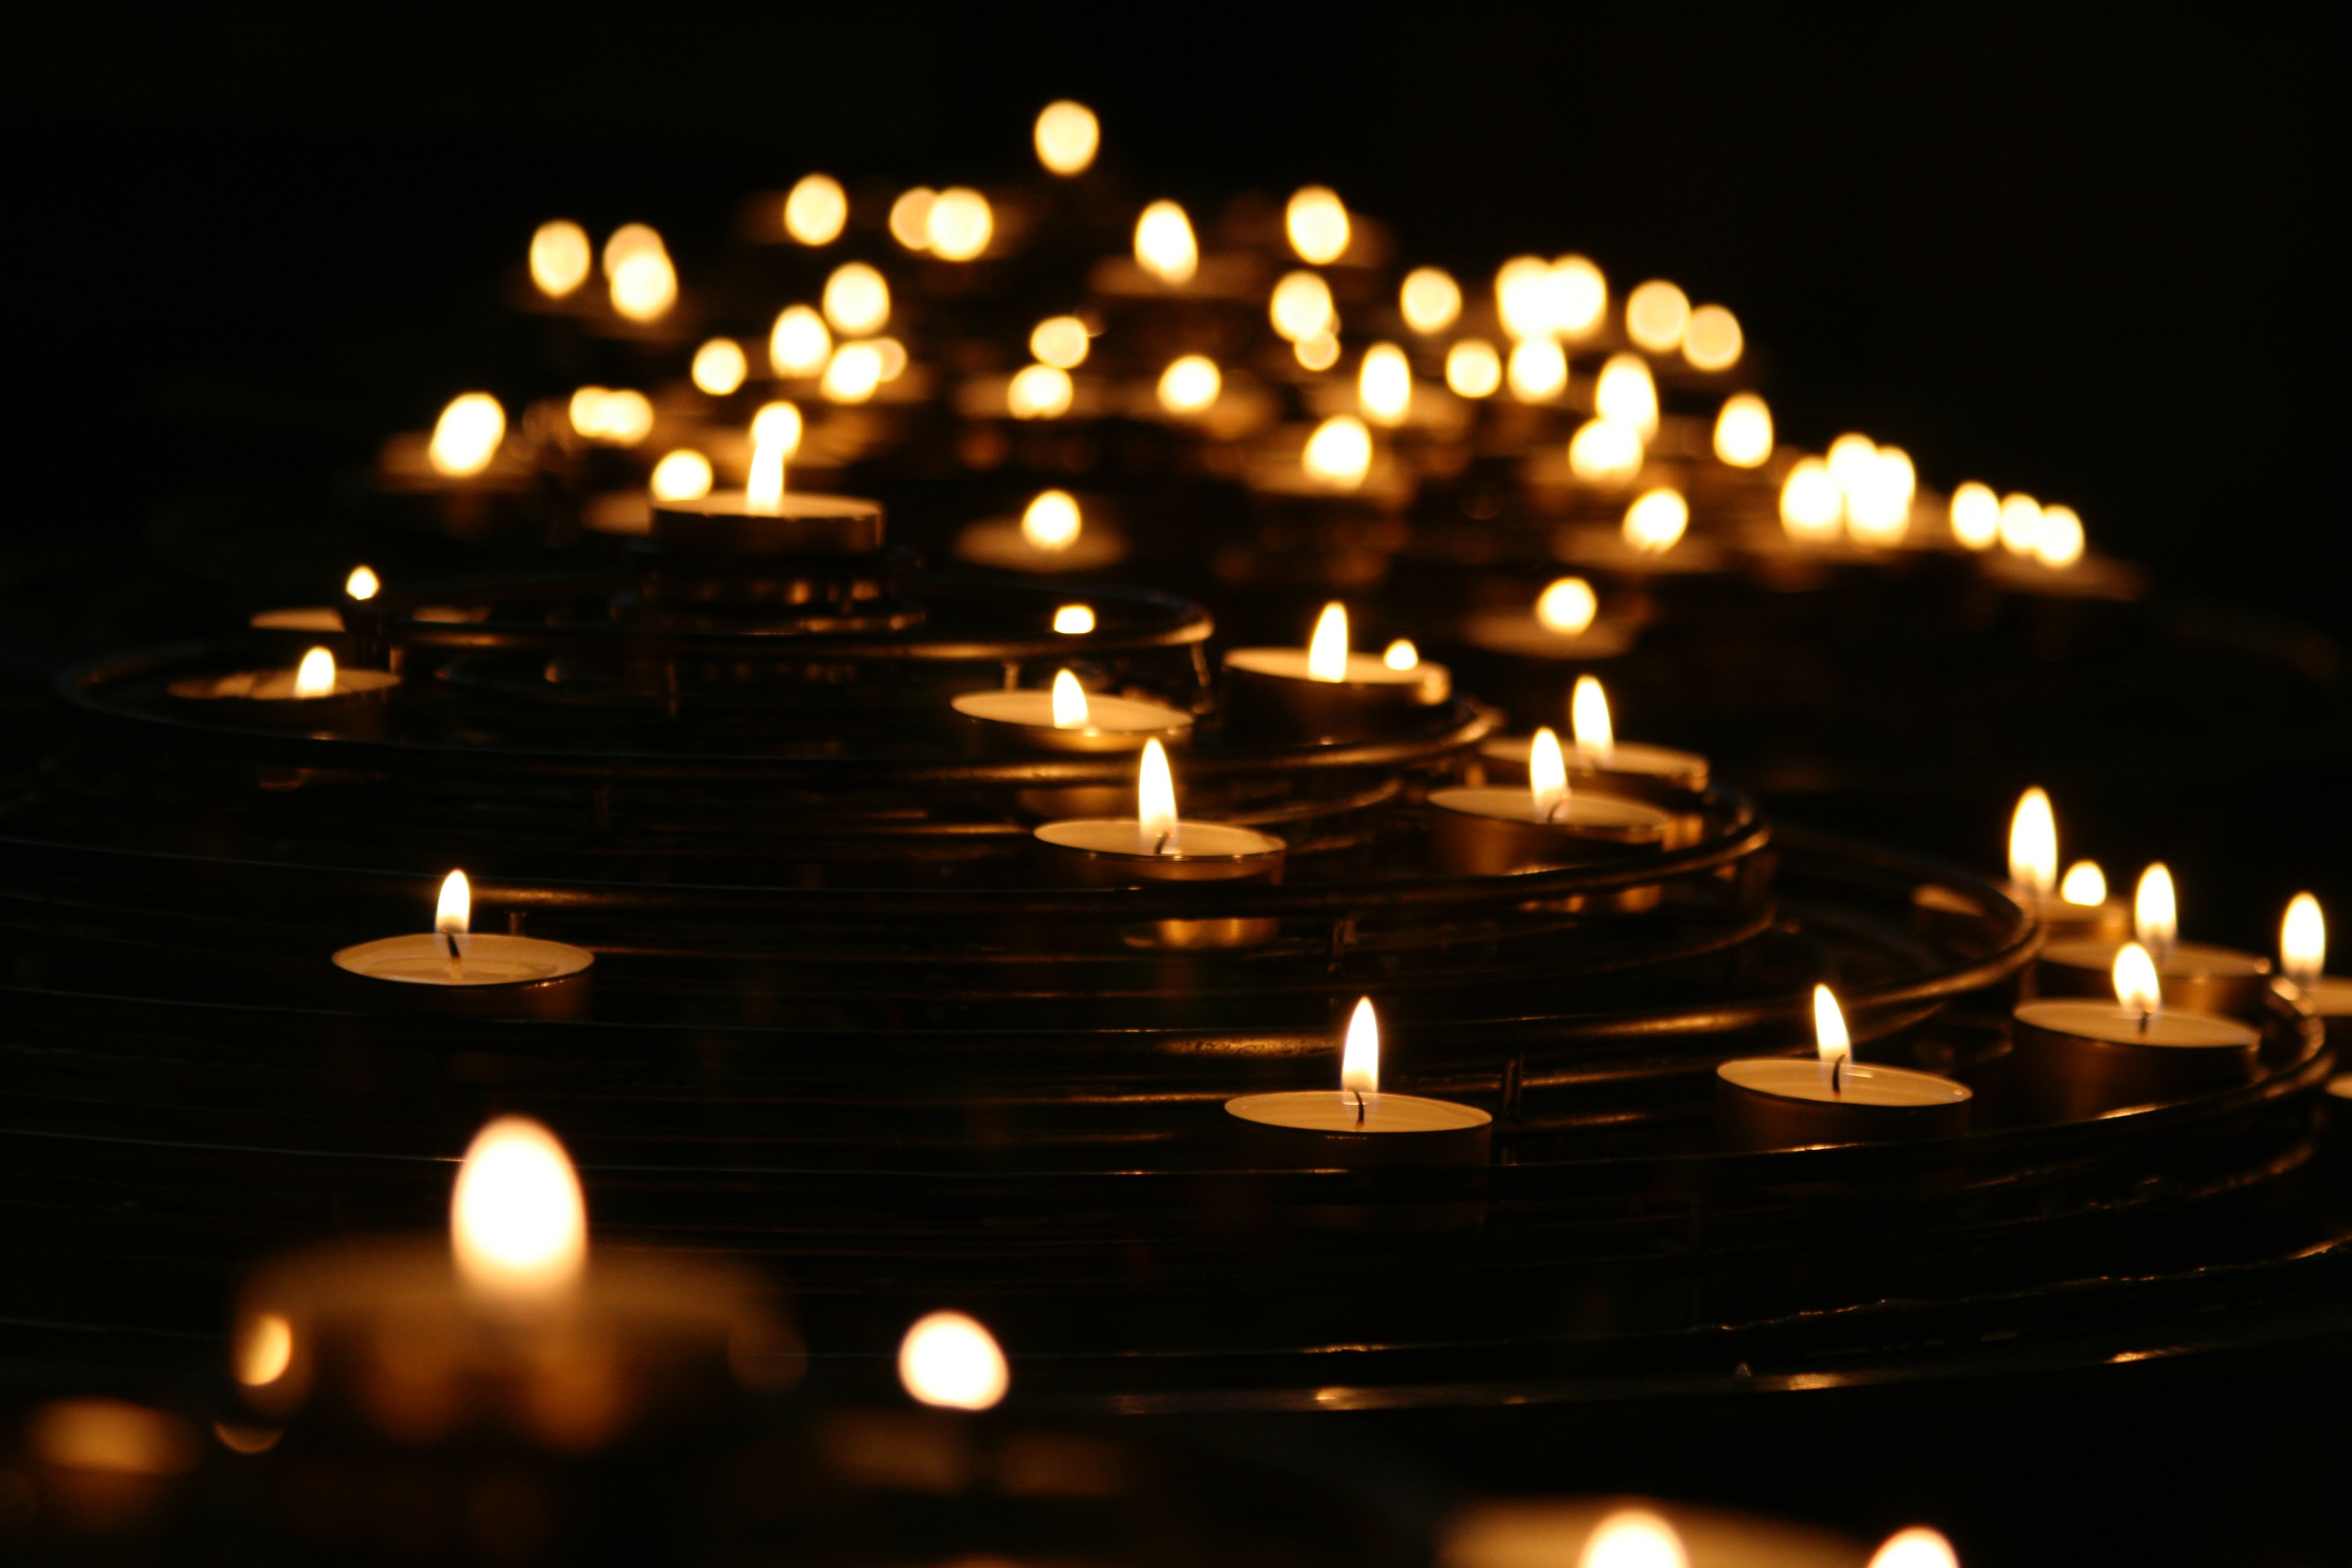 Is there a right way to grieve?